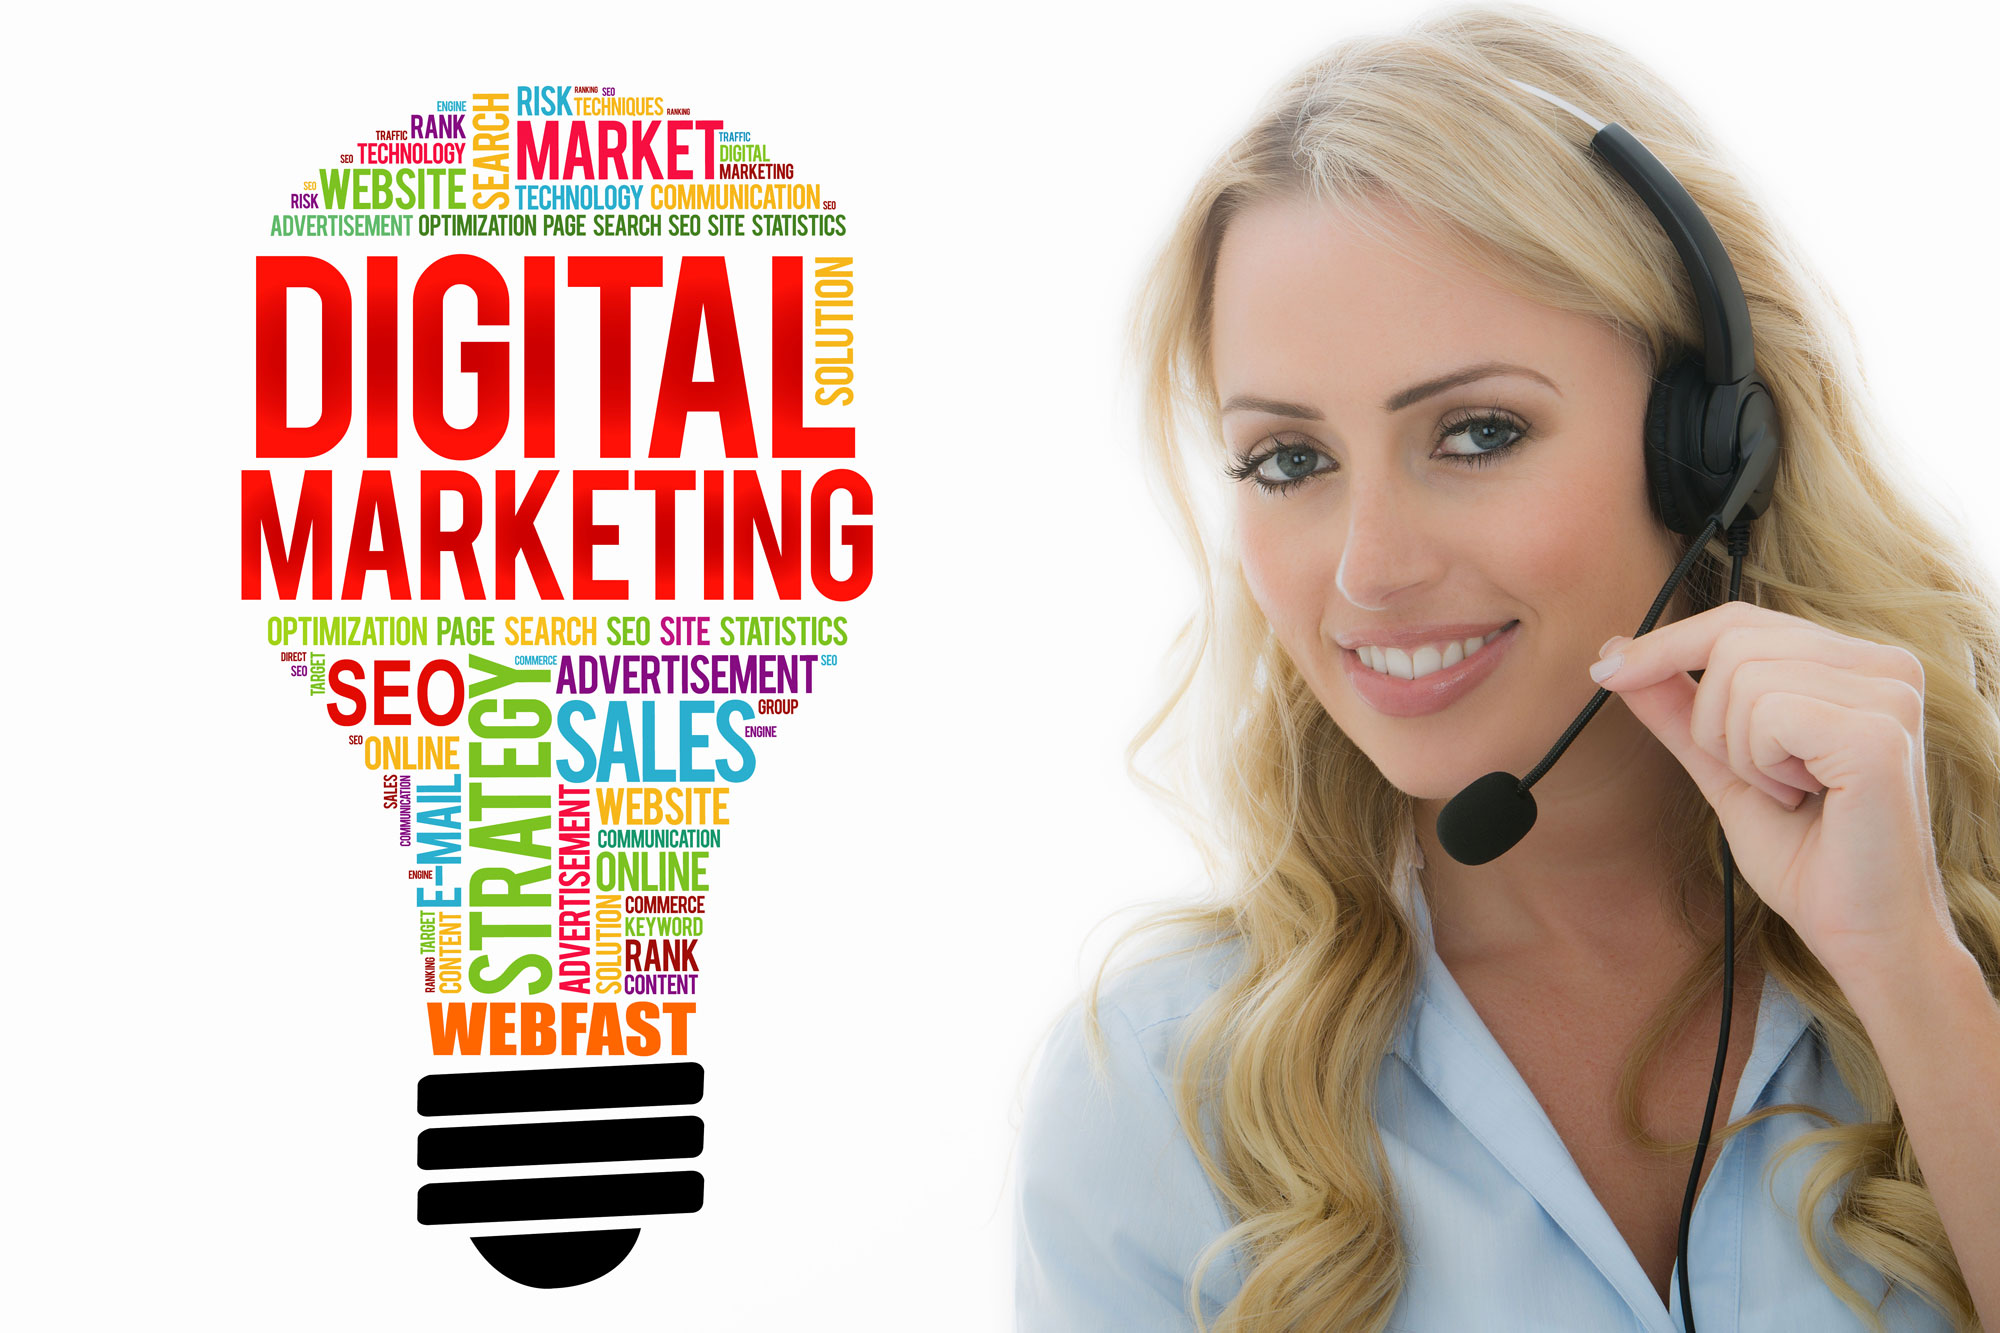 digital marketing agency highly recommended